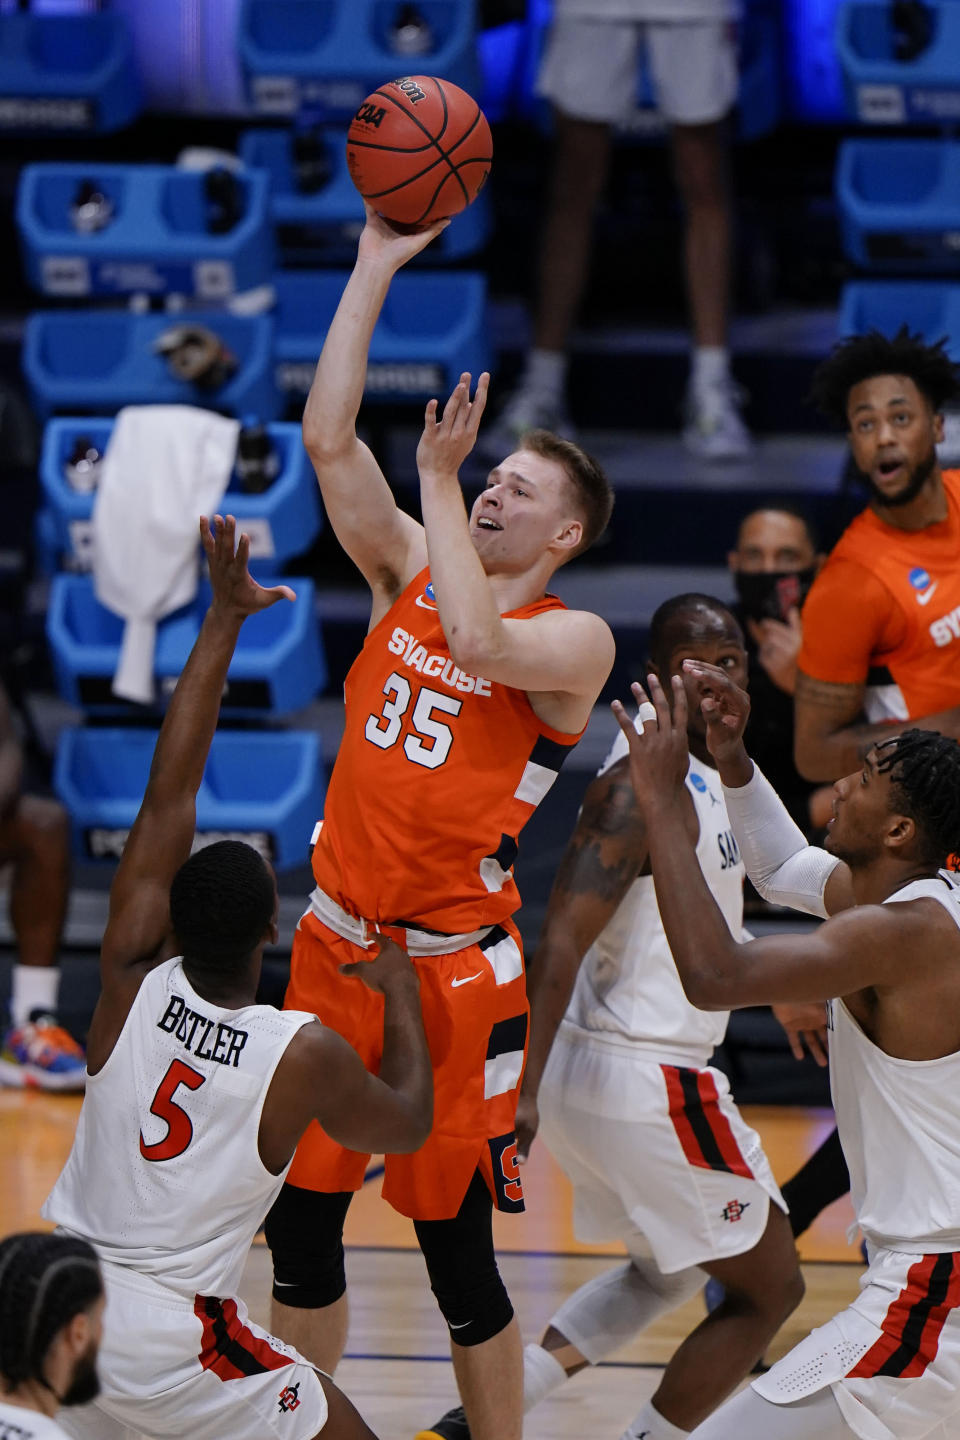 Syracuse guard Buddy Boeheim (35) shoots over San Diego State guard Lamont Butler (5) during the first half of a college basketball game in the first round of the NCAA tournament at Hinkle Fieldhouse in Indianapolis, Friday, March 19, 2021. (AP Photo/AJ Mast)